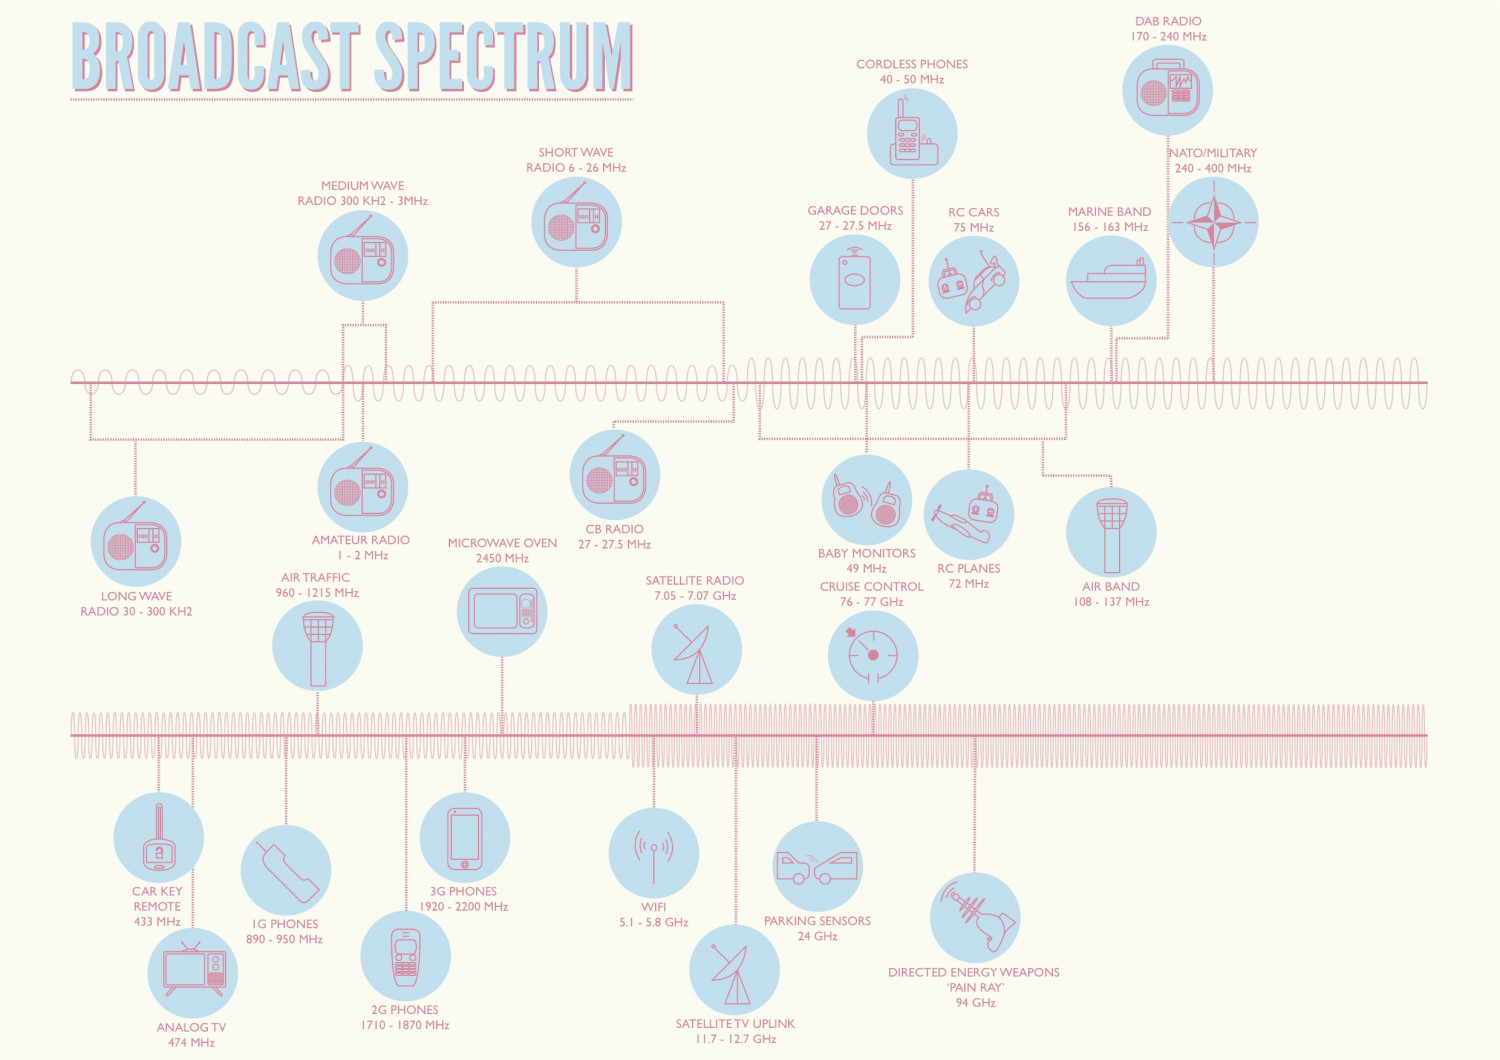 The Broadcast Spectrum Infographic